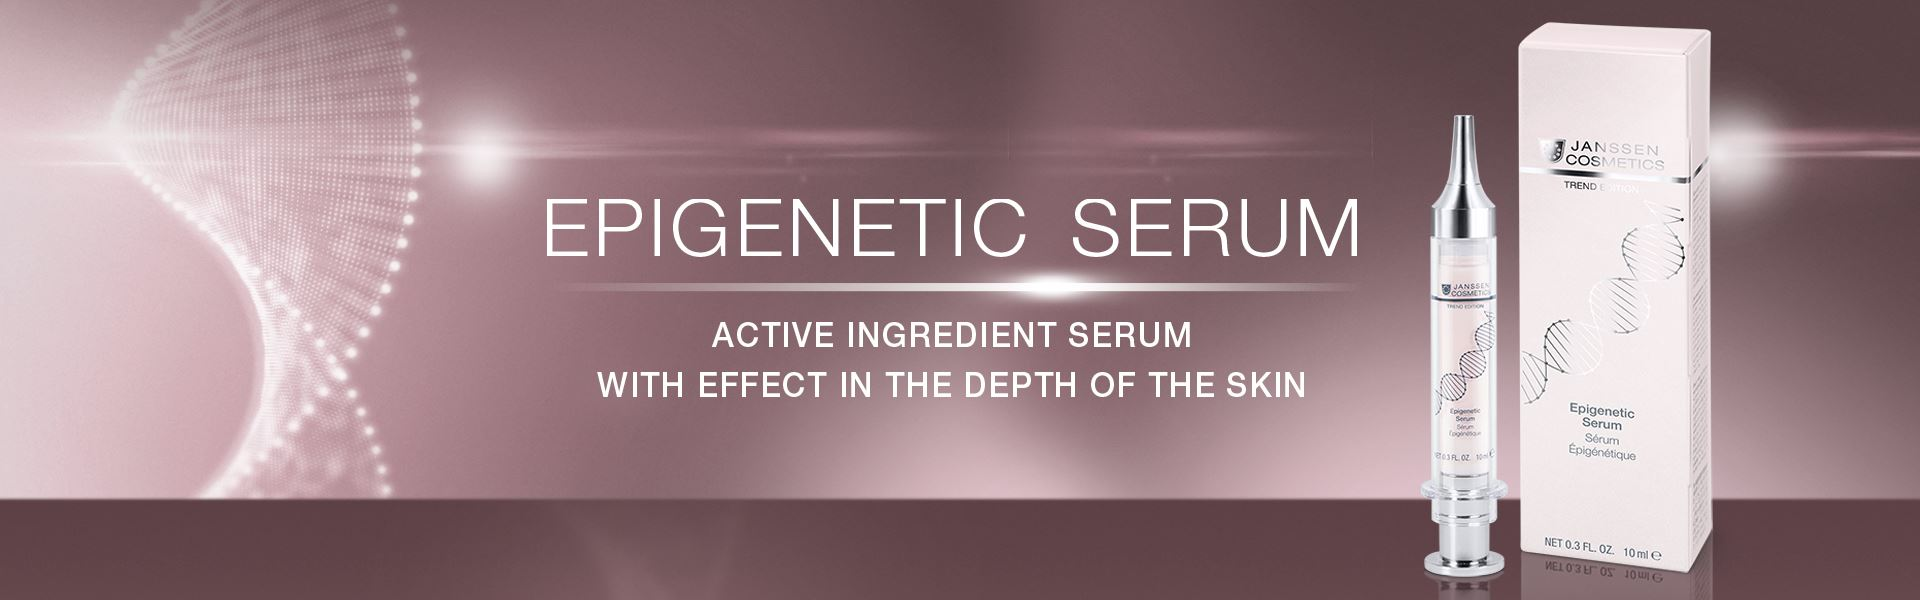 Epigenetic Serum - active ingredient serum with effect in the depth of the skin